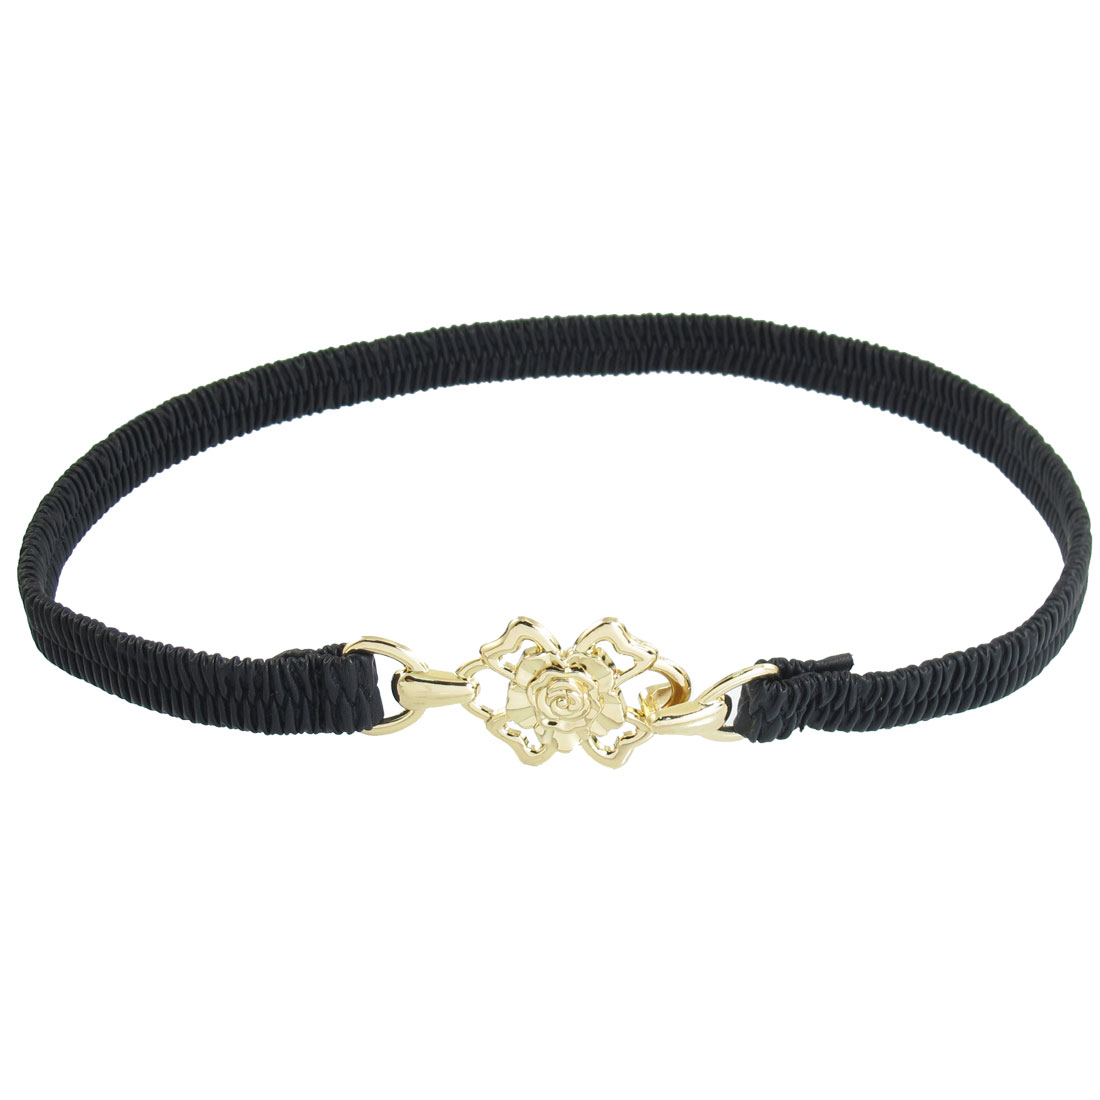 Ladies Gold Tone Flower Shaped Buckle 16mm Width Textured Cinch Belt Black